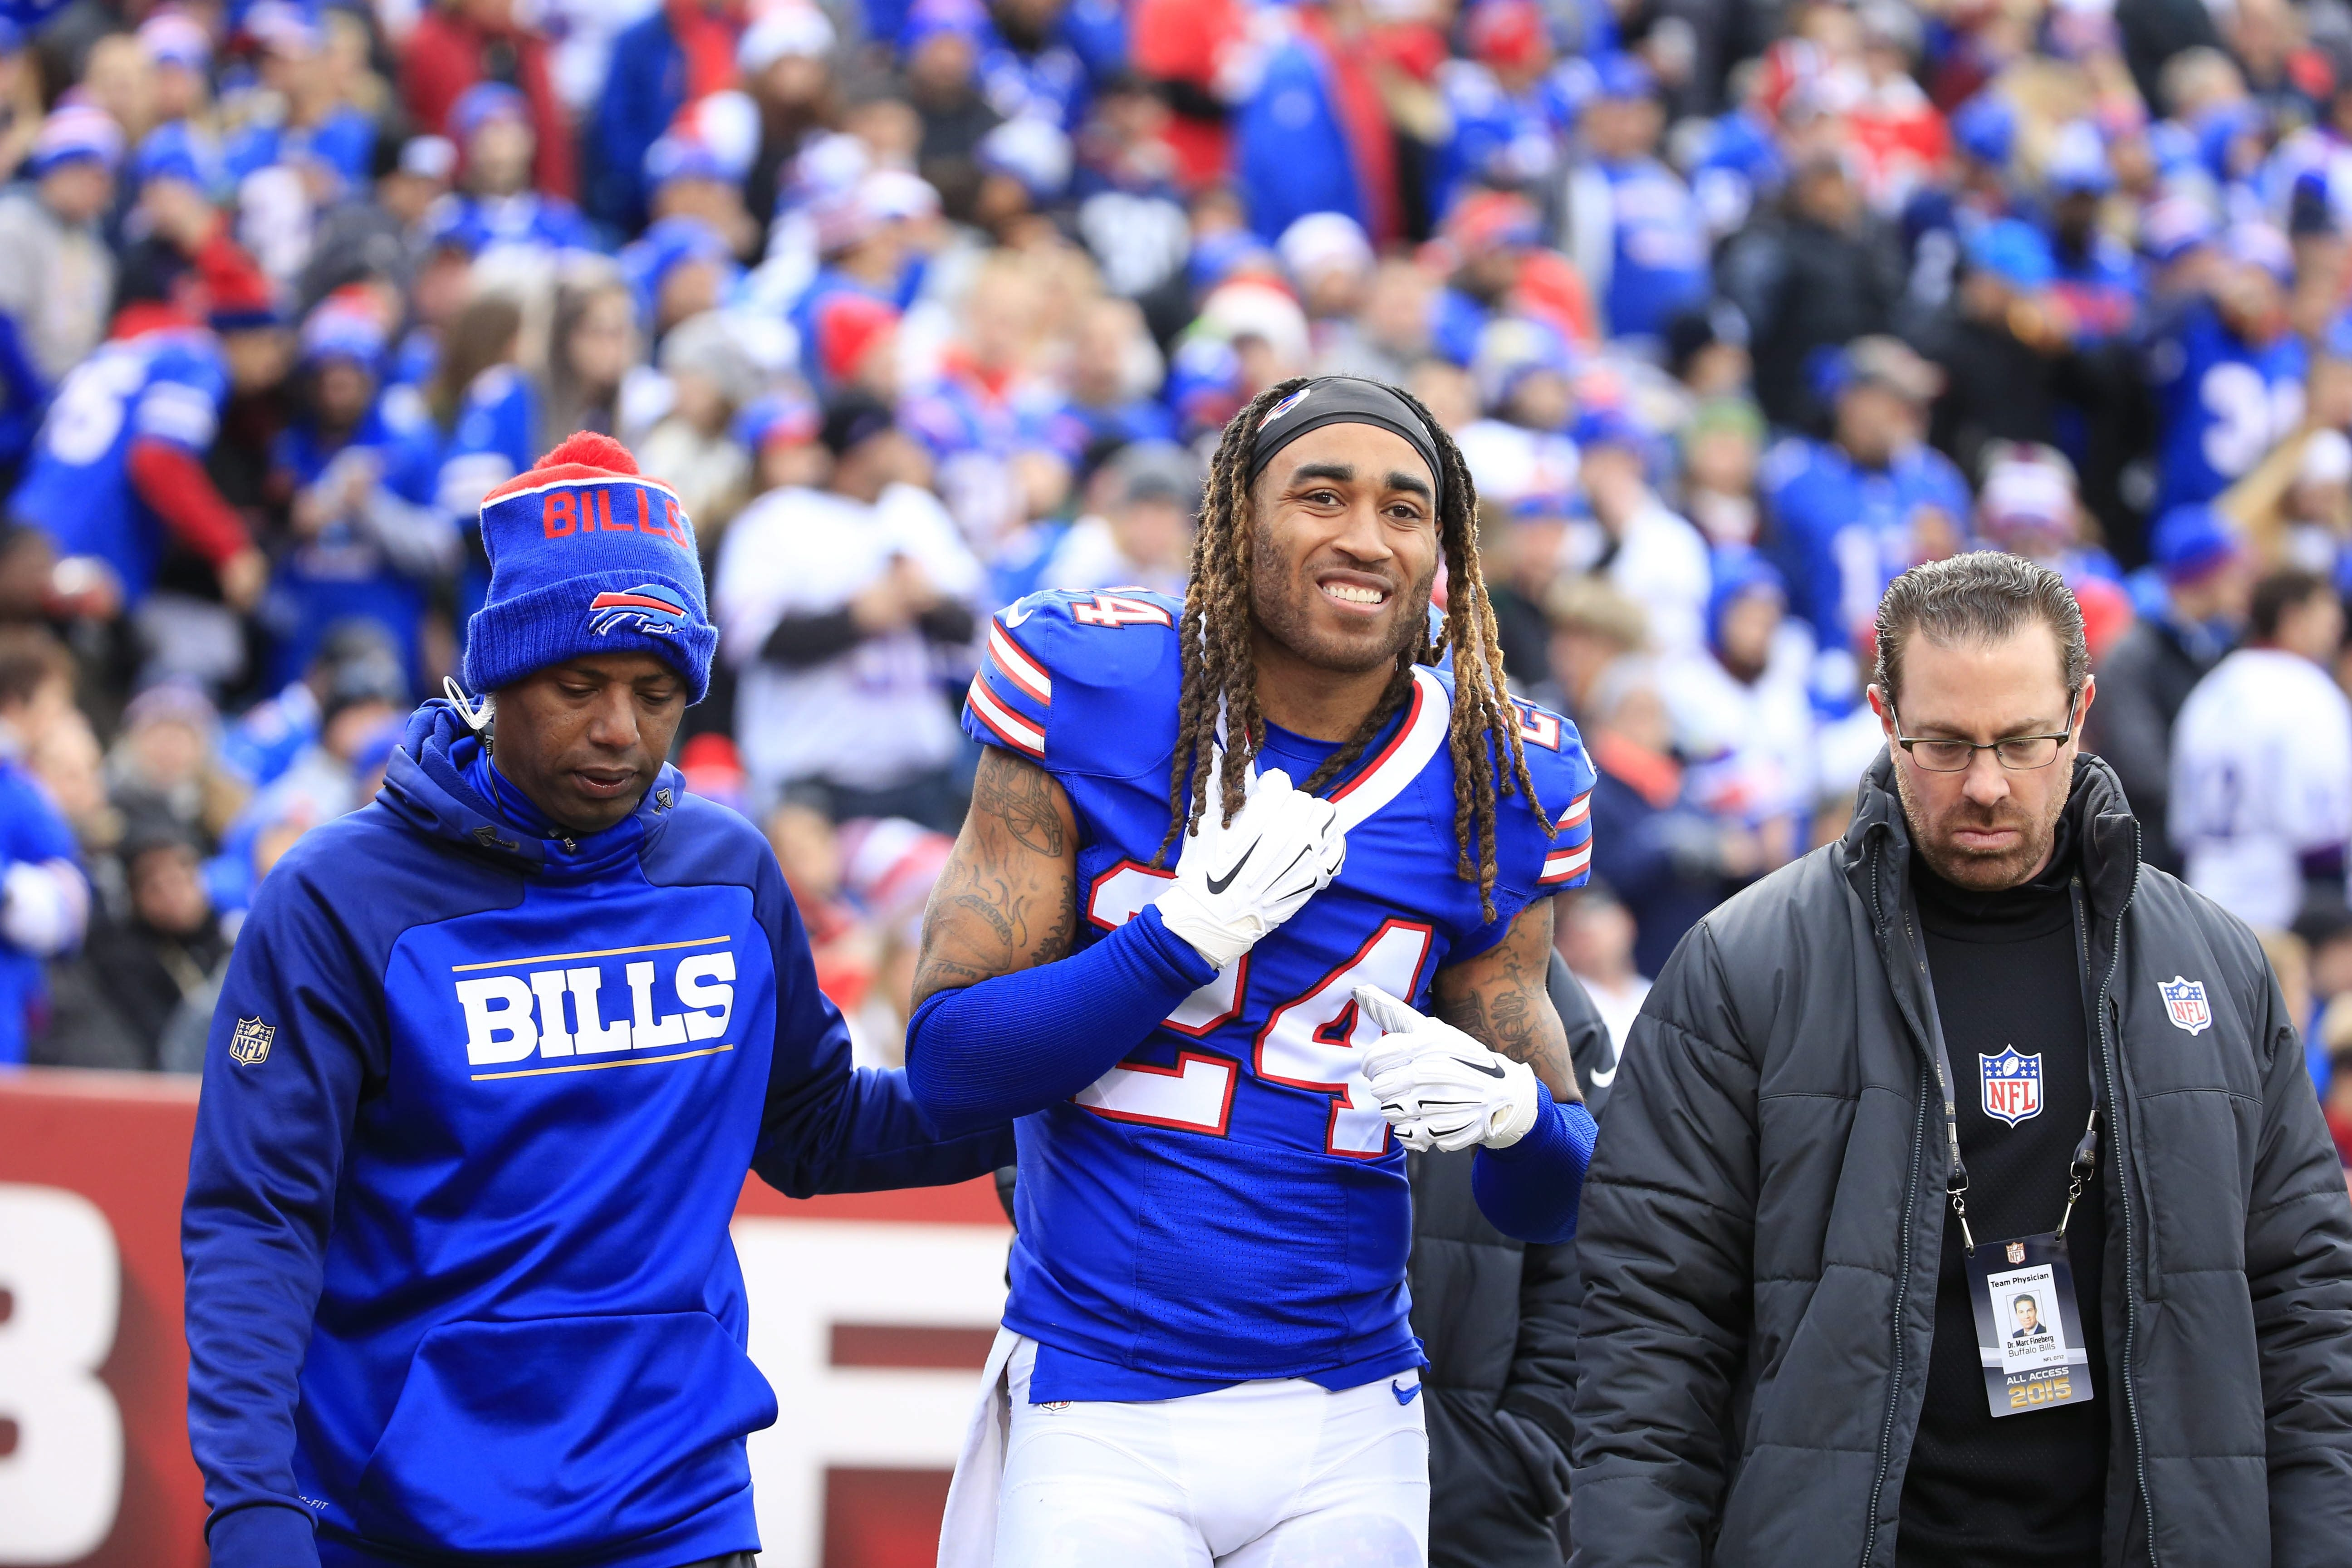 Bills cornerback Stephon Gilmore leaves the field after a shoulder injury on Dec. 6. The team has placed him on injured reserve.